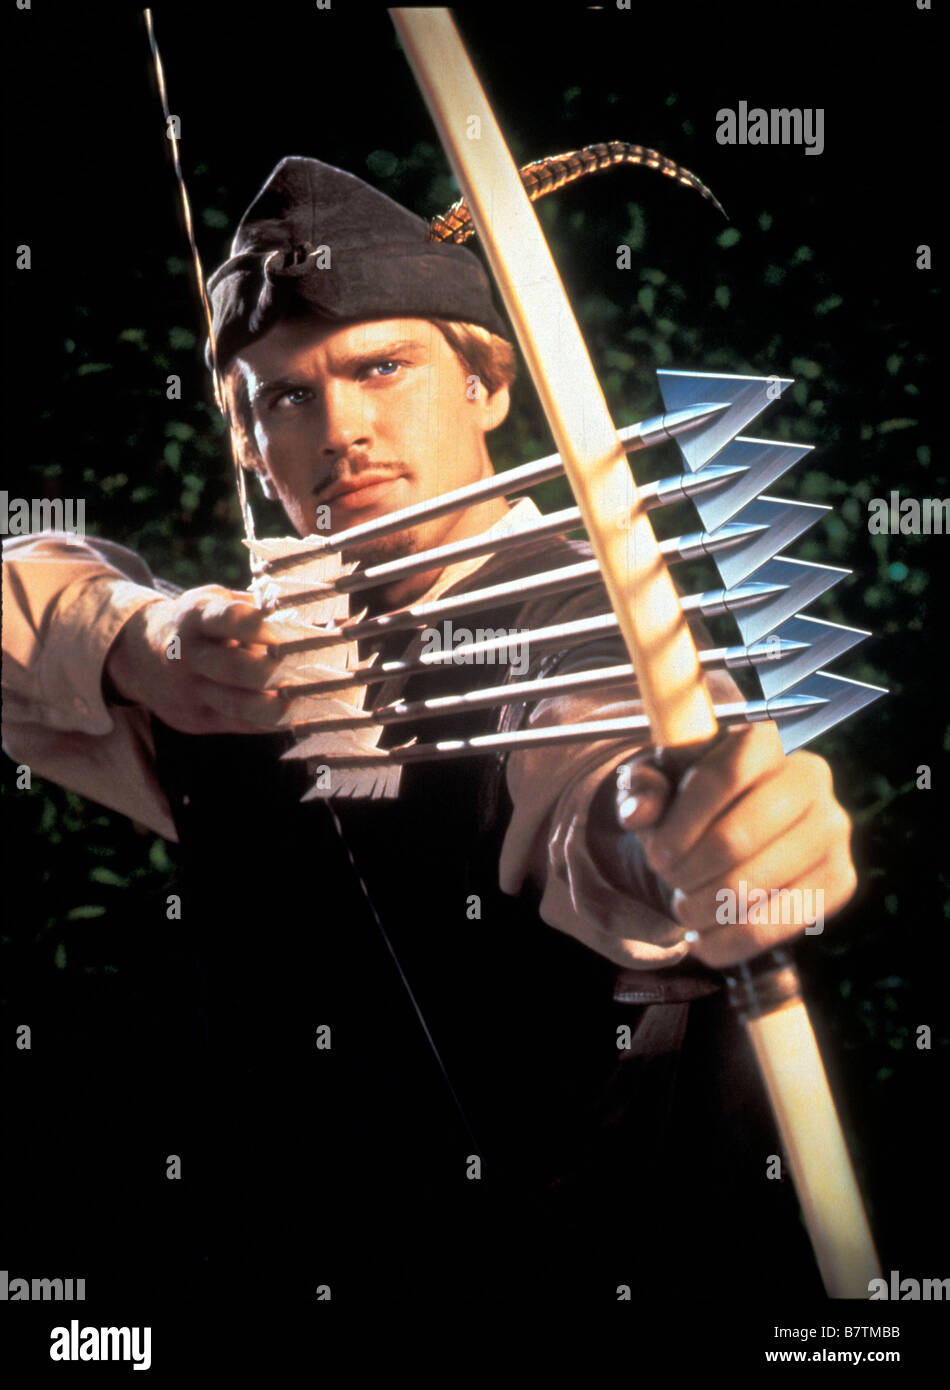 Robin Hood: Men in Tights  Year: 1993 USA Cary Elwes  Director: Mel Brooks - Stock Image